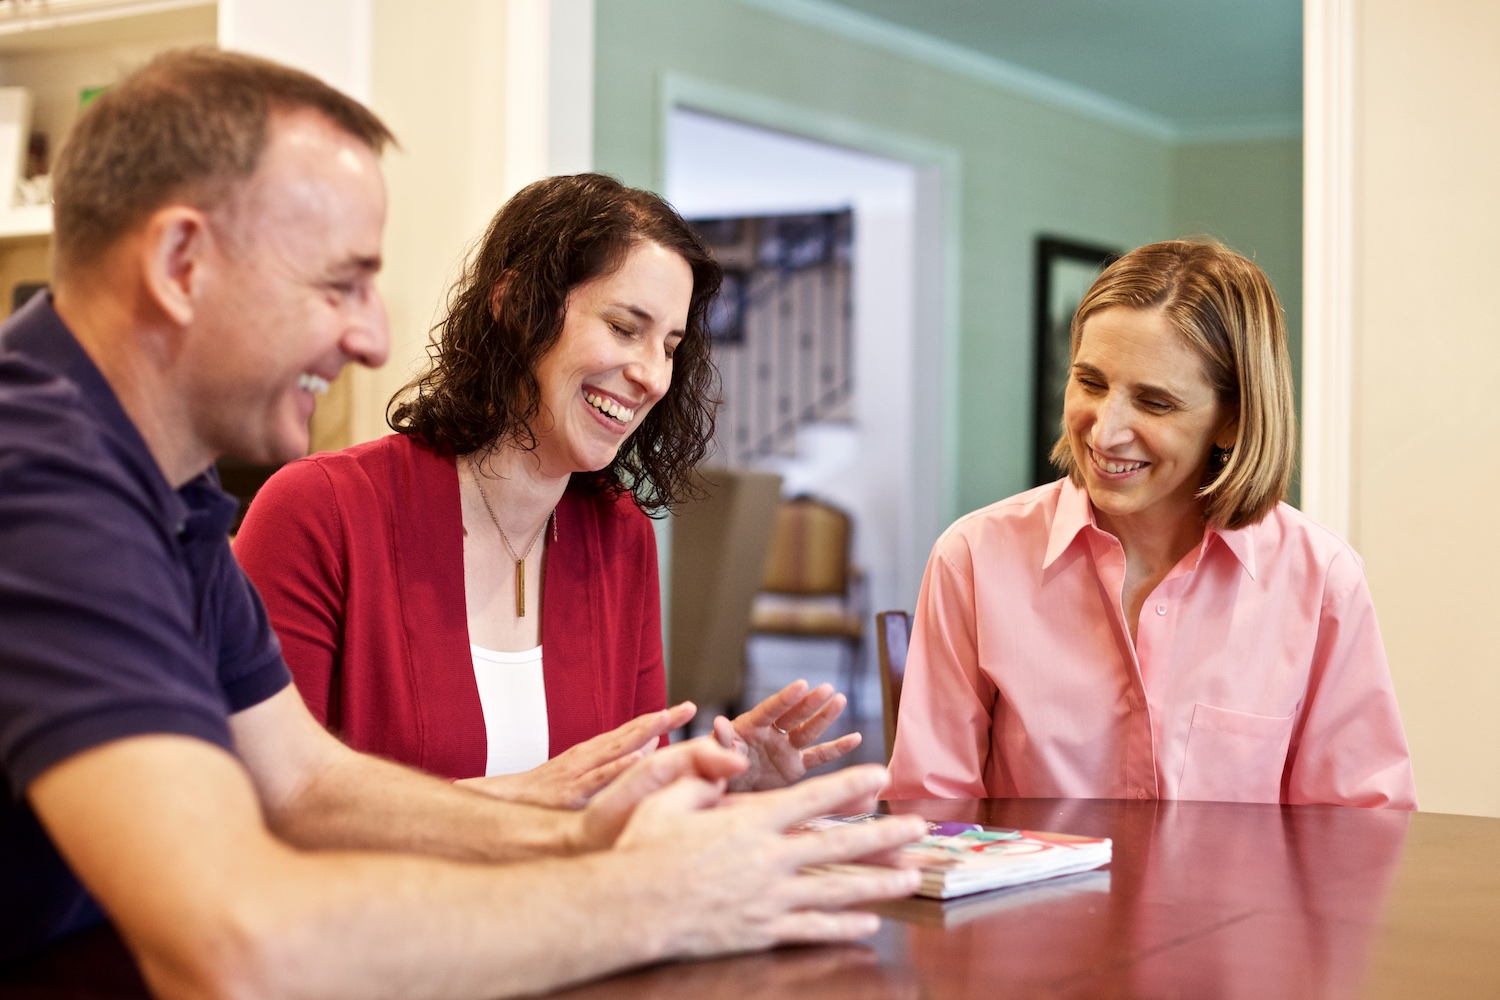 Rebecca and parents connect over challenges and share strategies